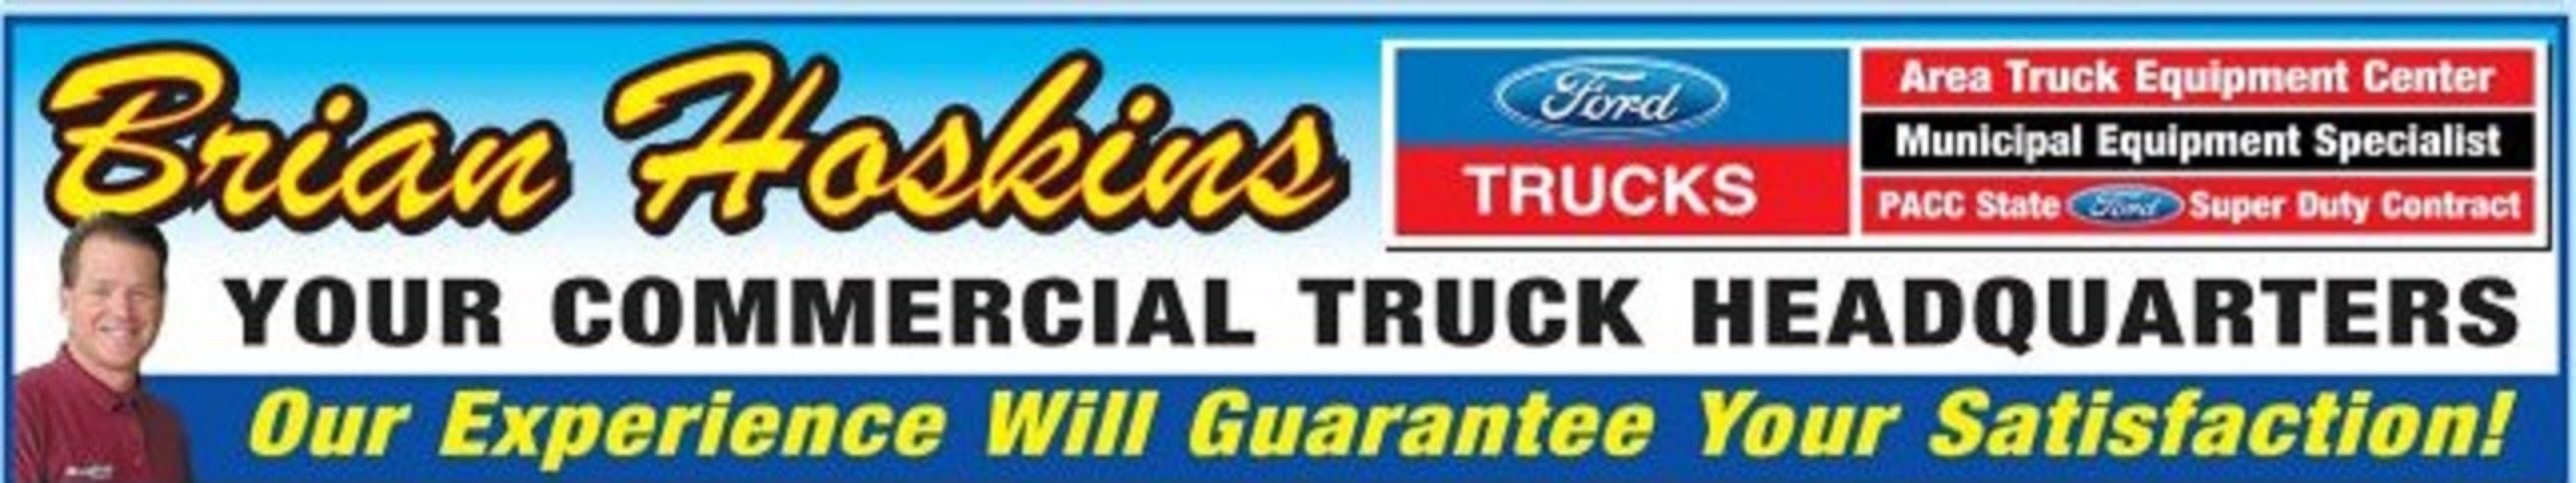 Brian Hoskins Ford Banner